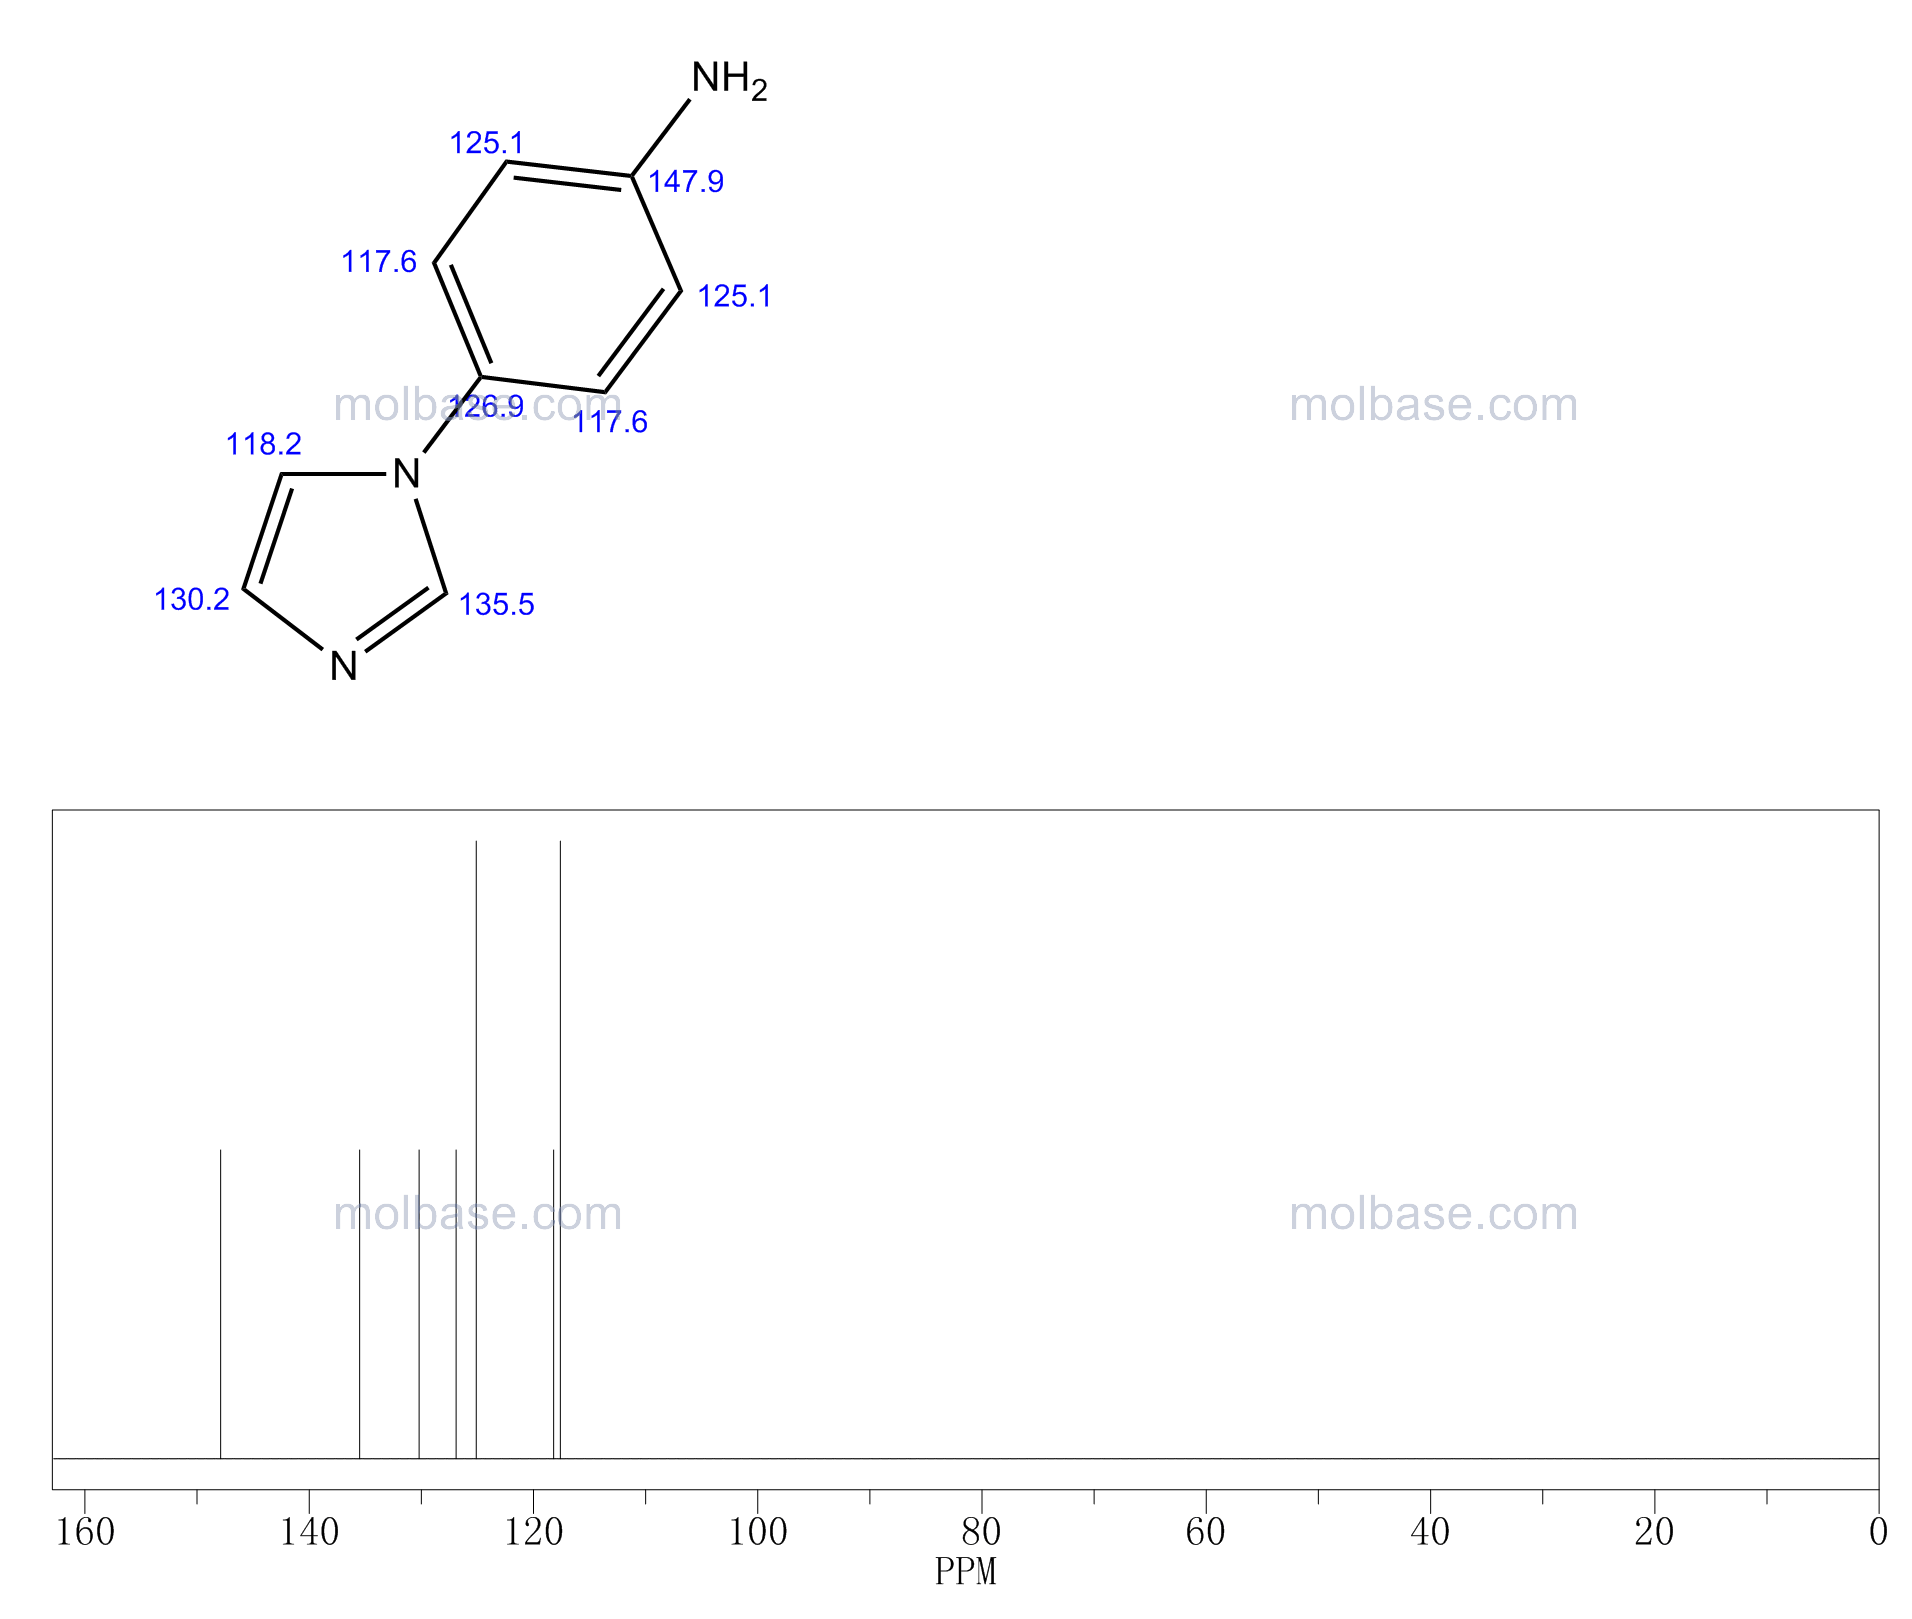 4-imidazol-1-ylaniline NMR spectra analysis, Chemical CAS NO. 2221-00-3 NMR spectral analysis, 4-imidazol-1-ylaniline C-NMR spectrum